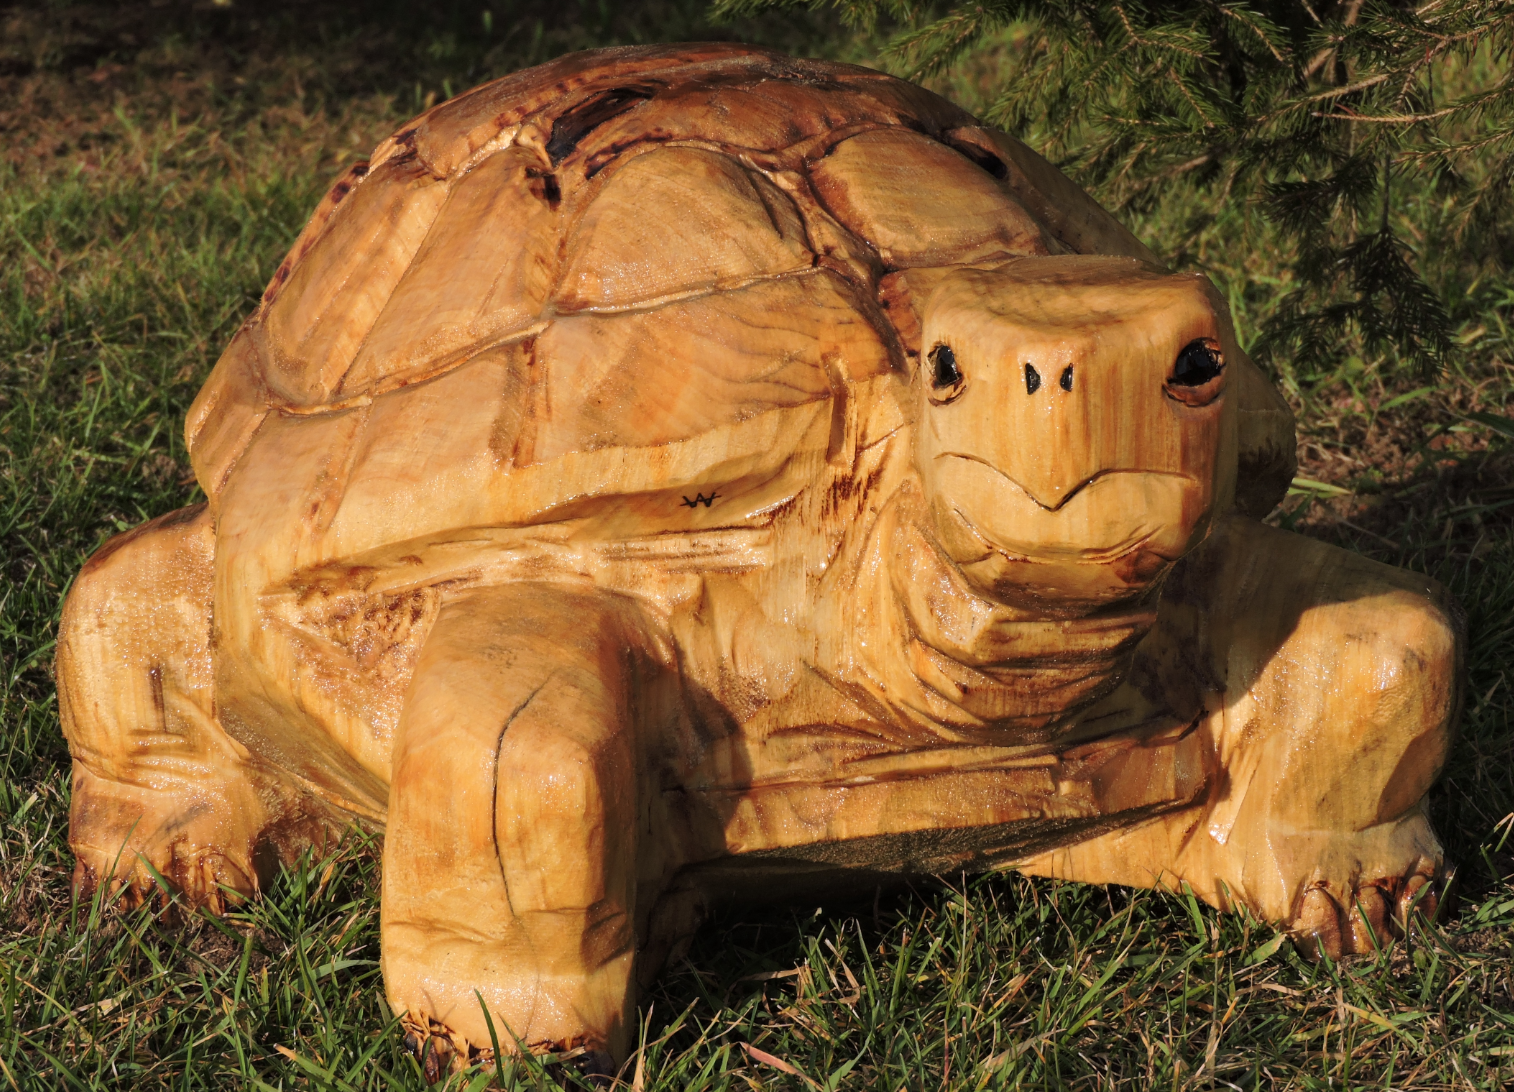 Tortoise chainsaw carving art yard decoration